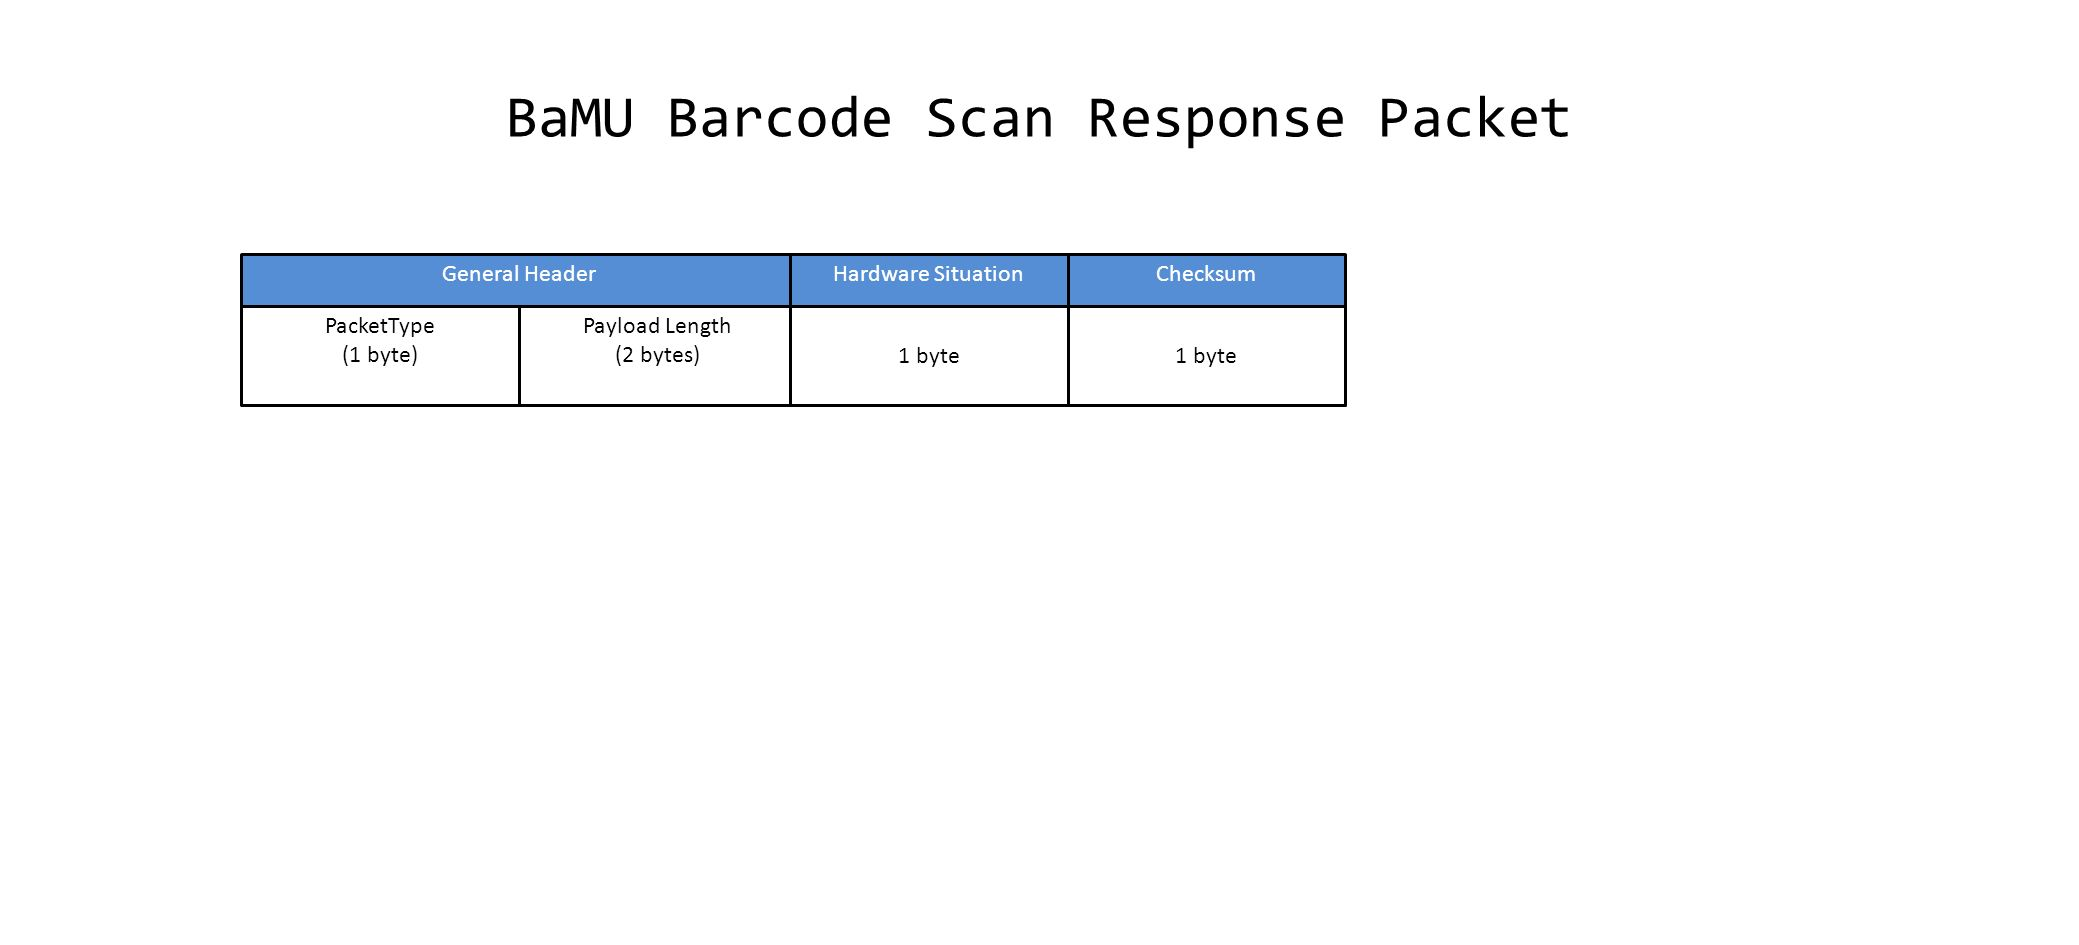 BaMU Barcode Scan Response Packet PacketType (1 byte) Payload Length (2 bytes) General Header 1 byte Hardware Situation 1 byte Checksum